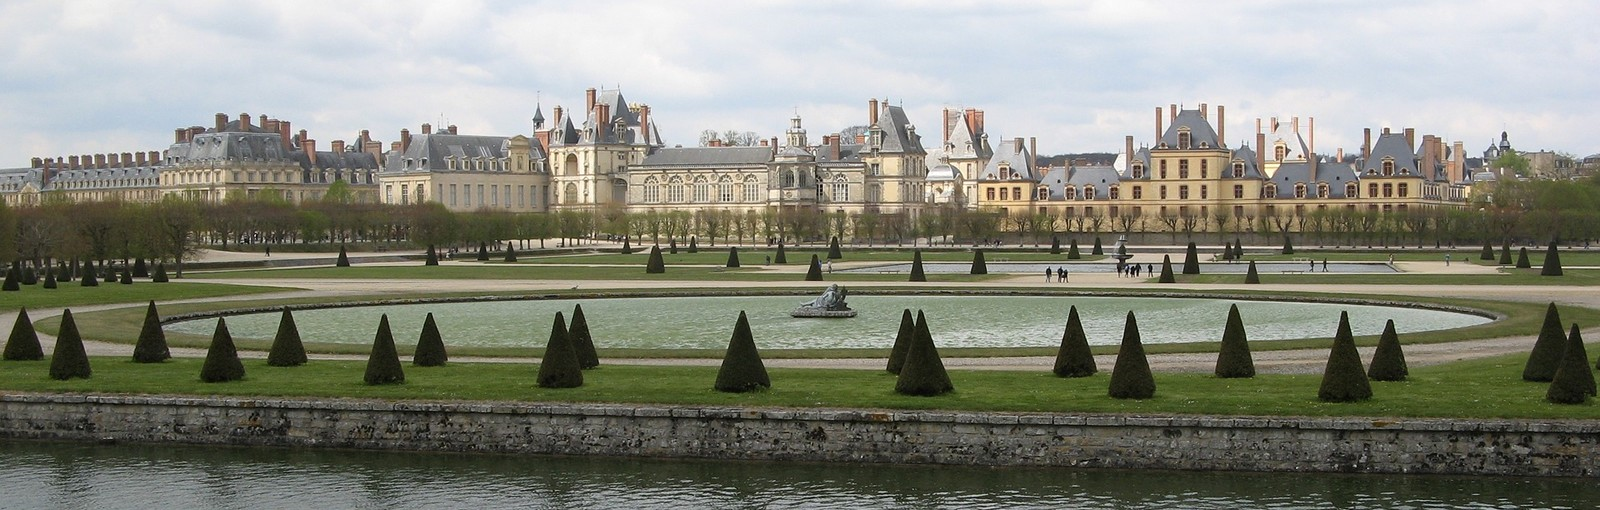 Tours Fontainebleau - Barbizon - Half days - Day tours from Paris